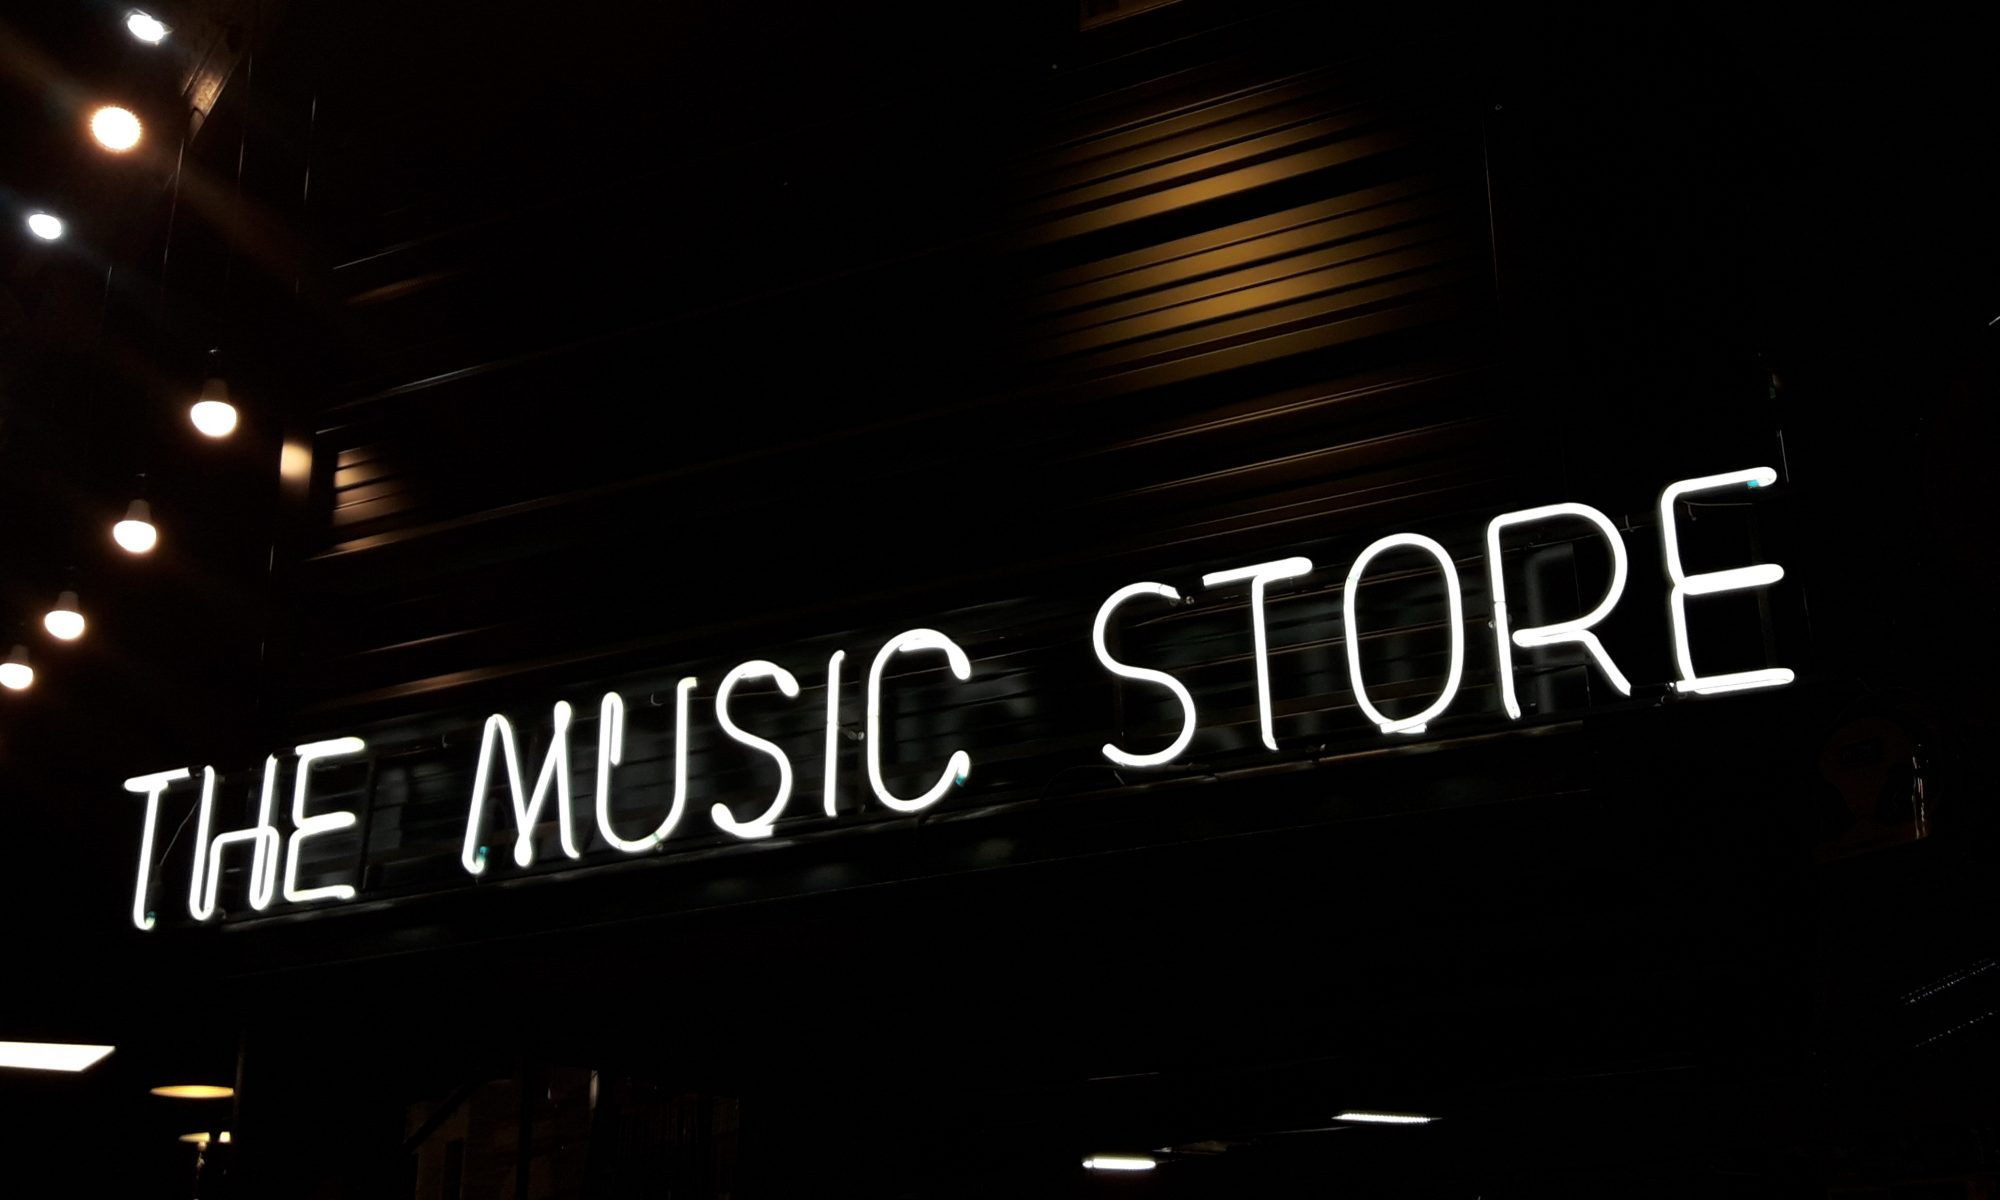 The Music Store